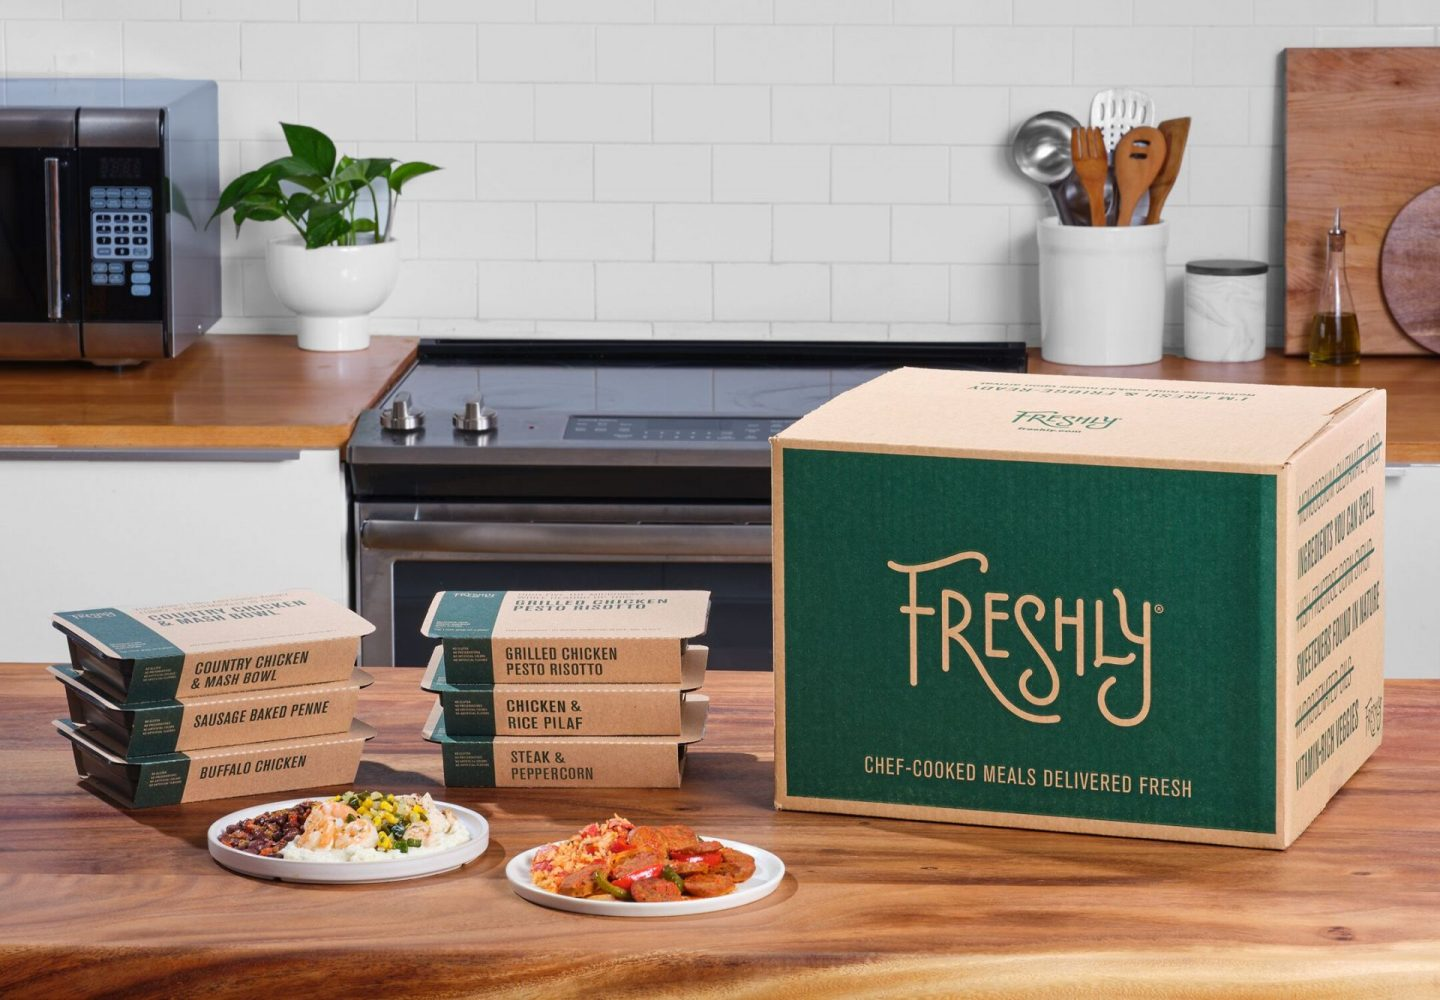 Image of table with freshly meal delivery service order